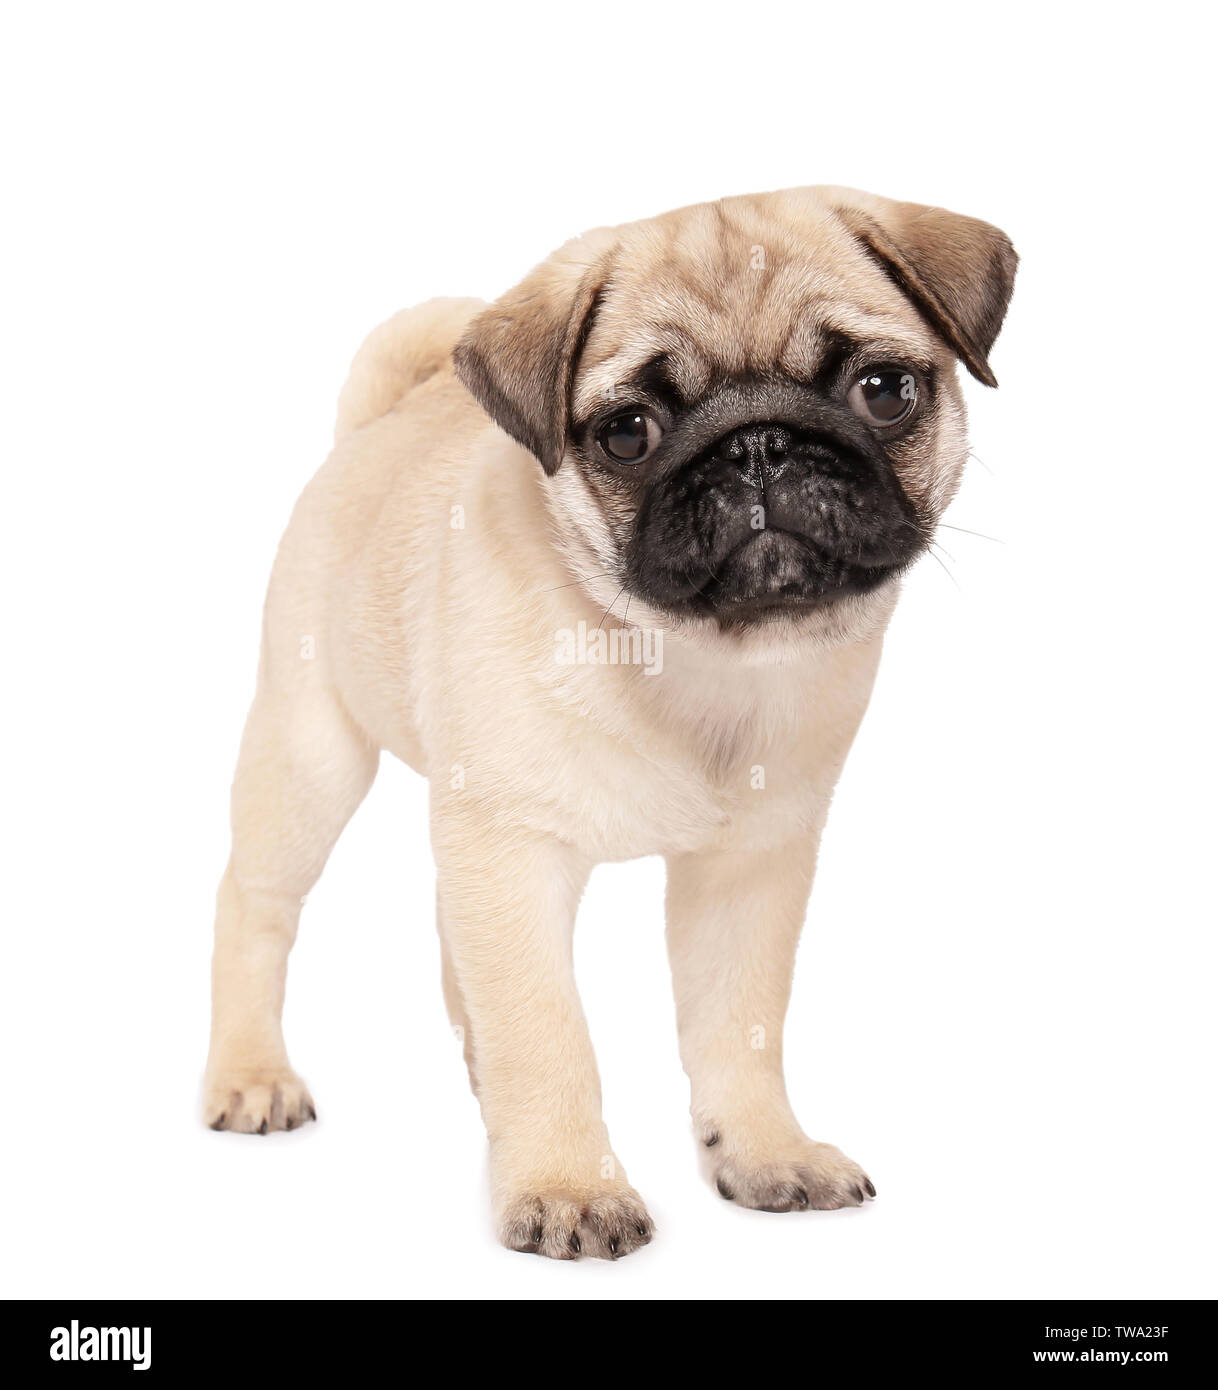 Cute Pug Puppy On White Background Stock Photo Alamy